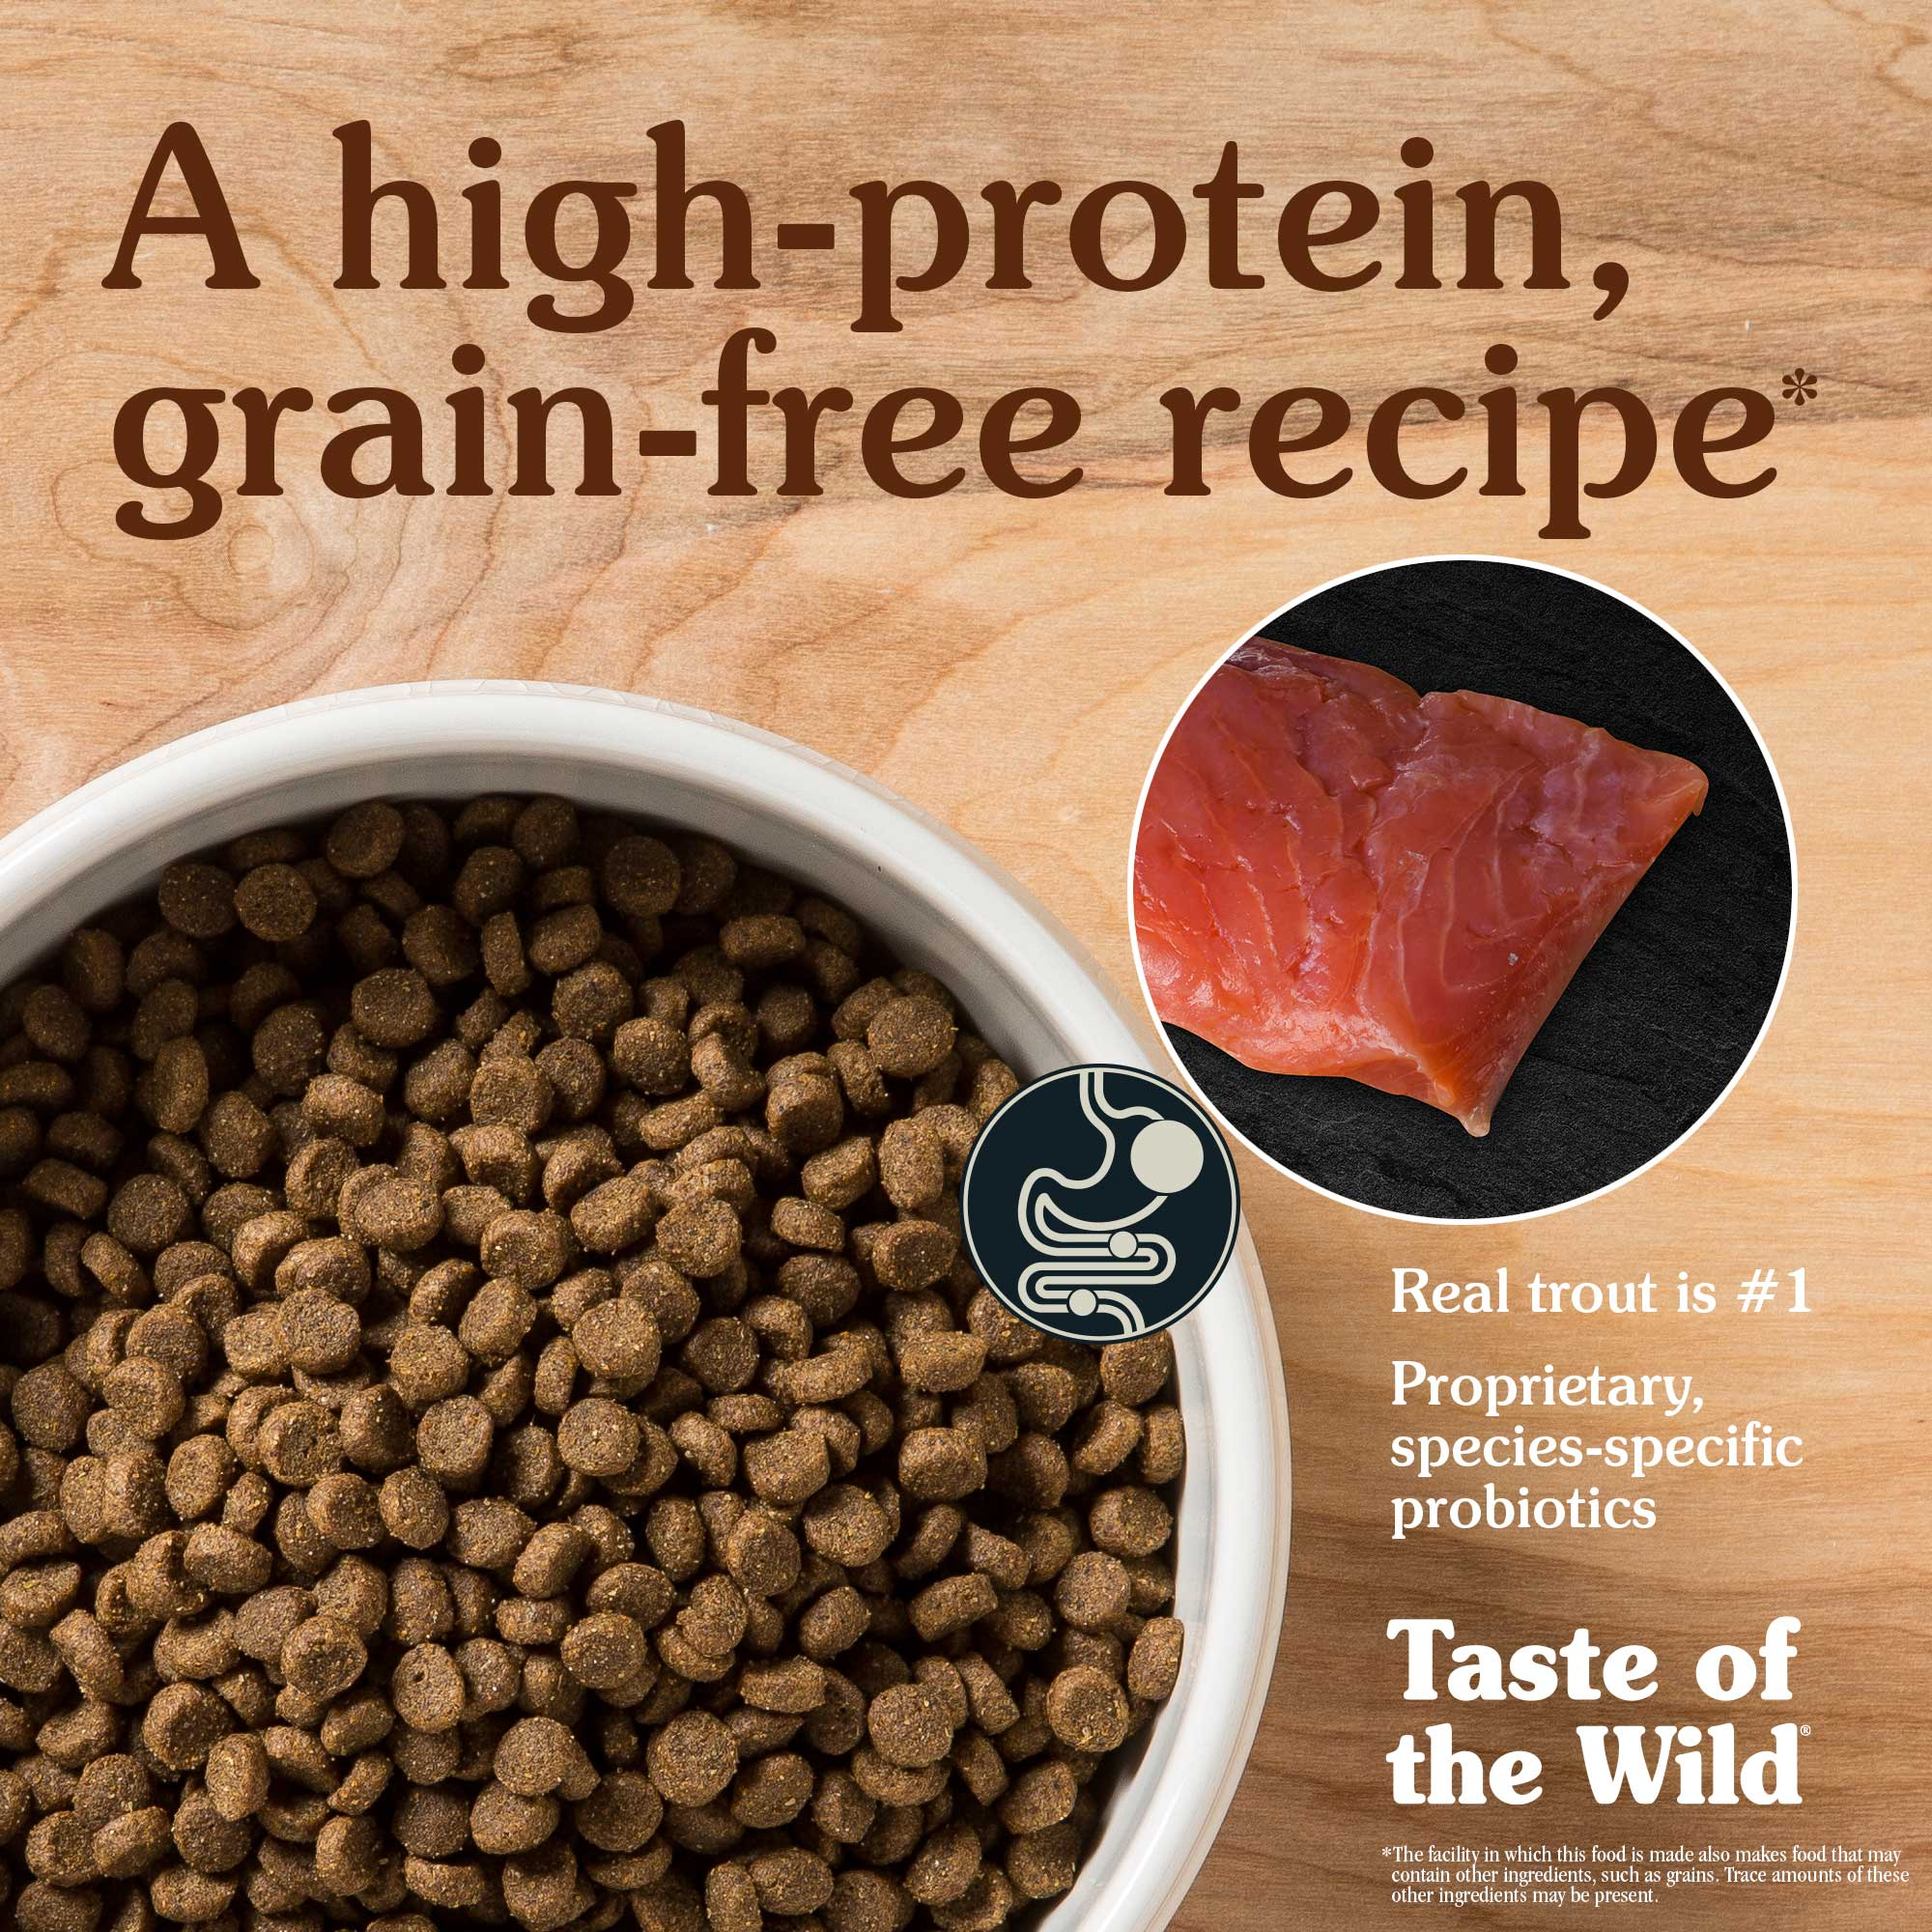 A high-protein, grain-free recipe. Real trout is #1.